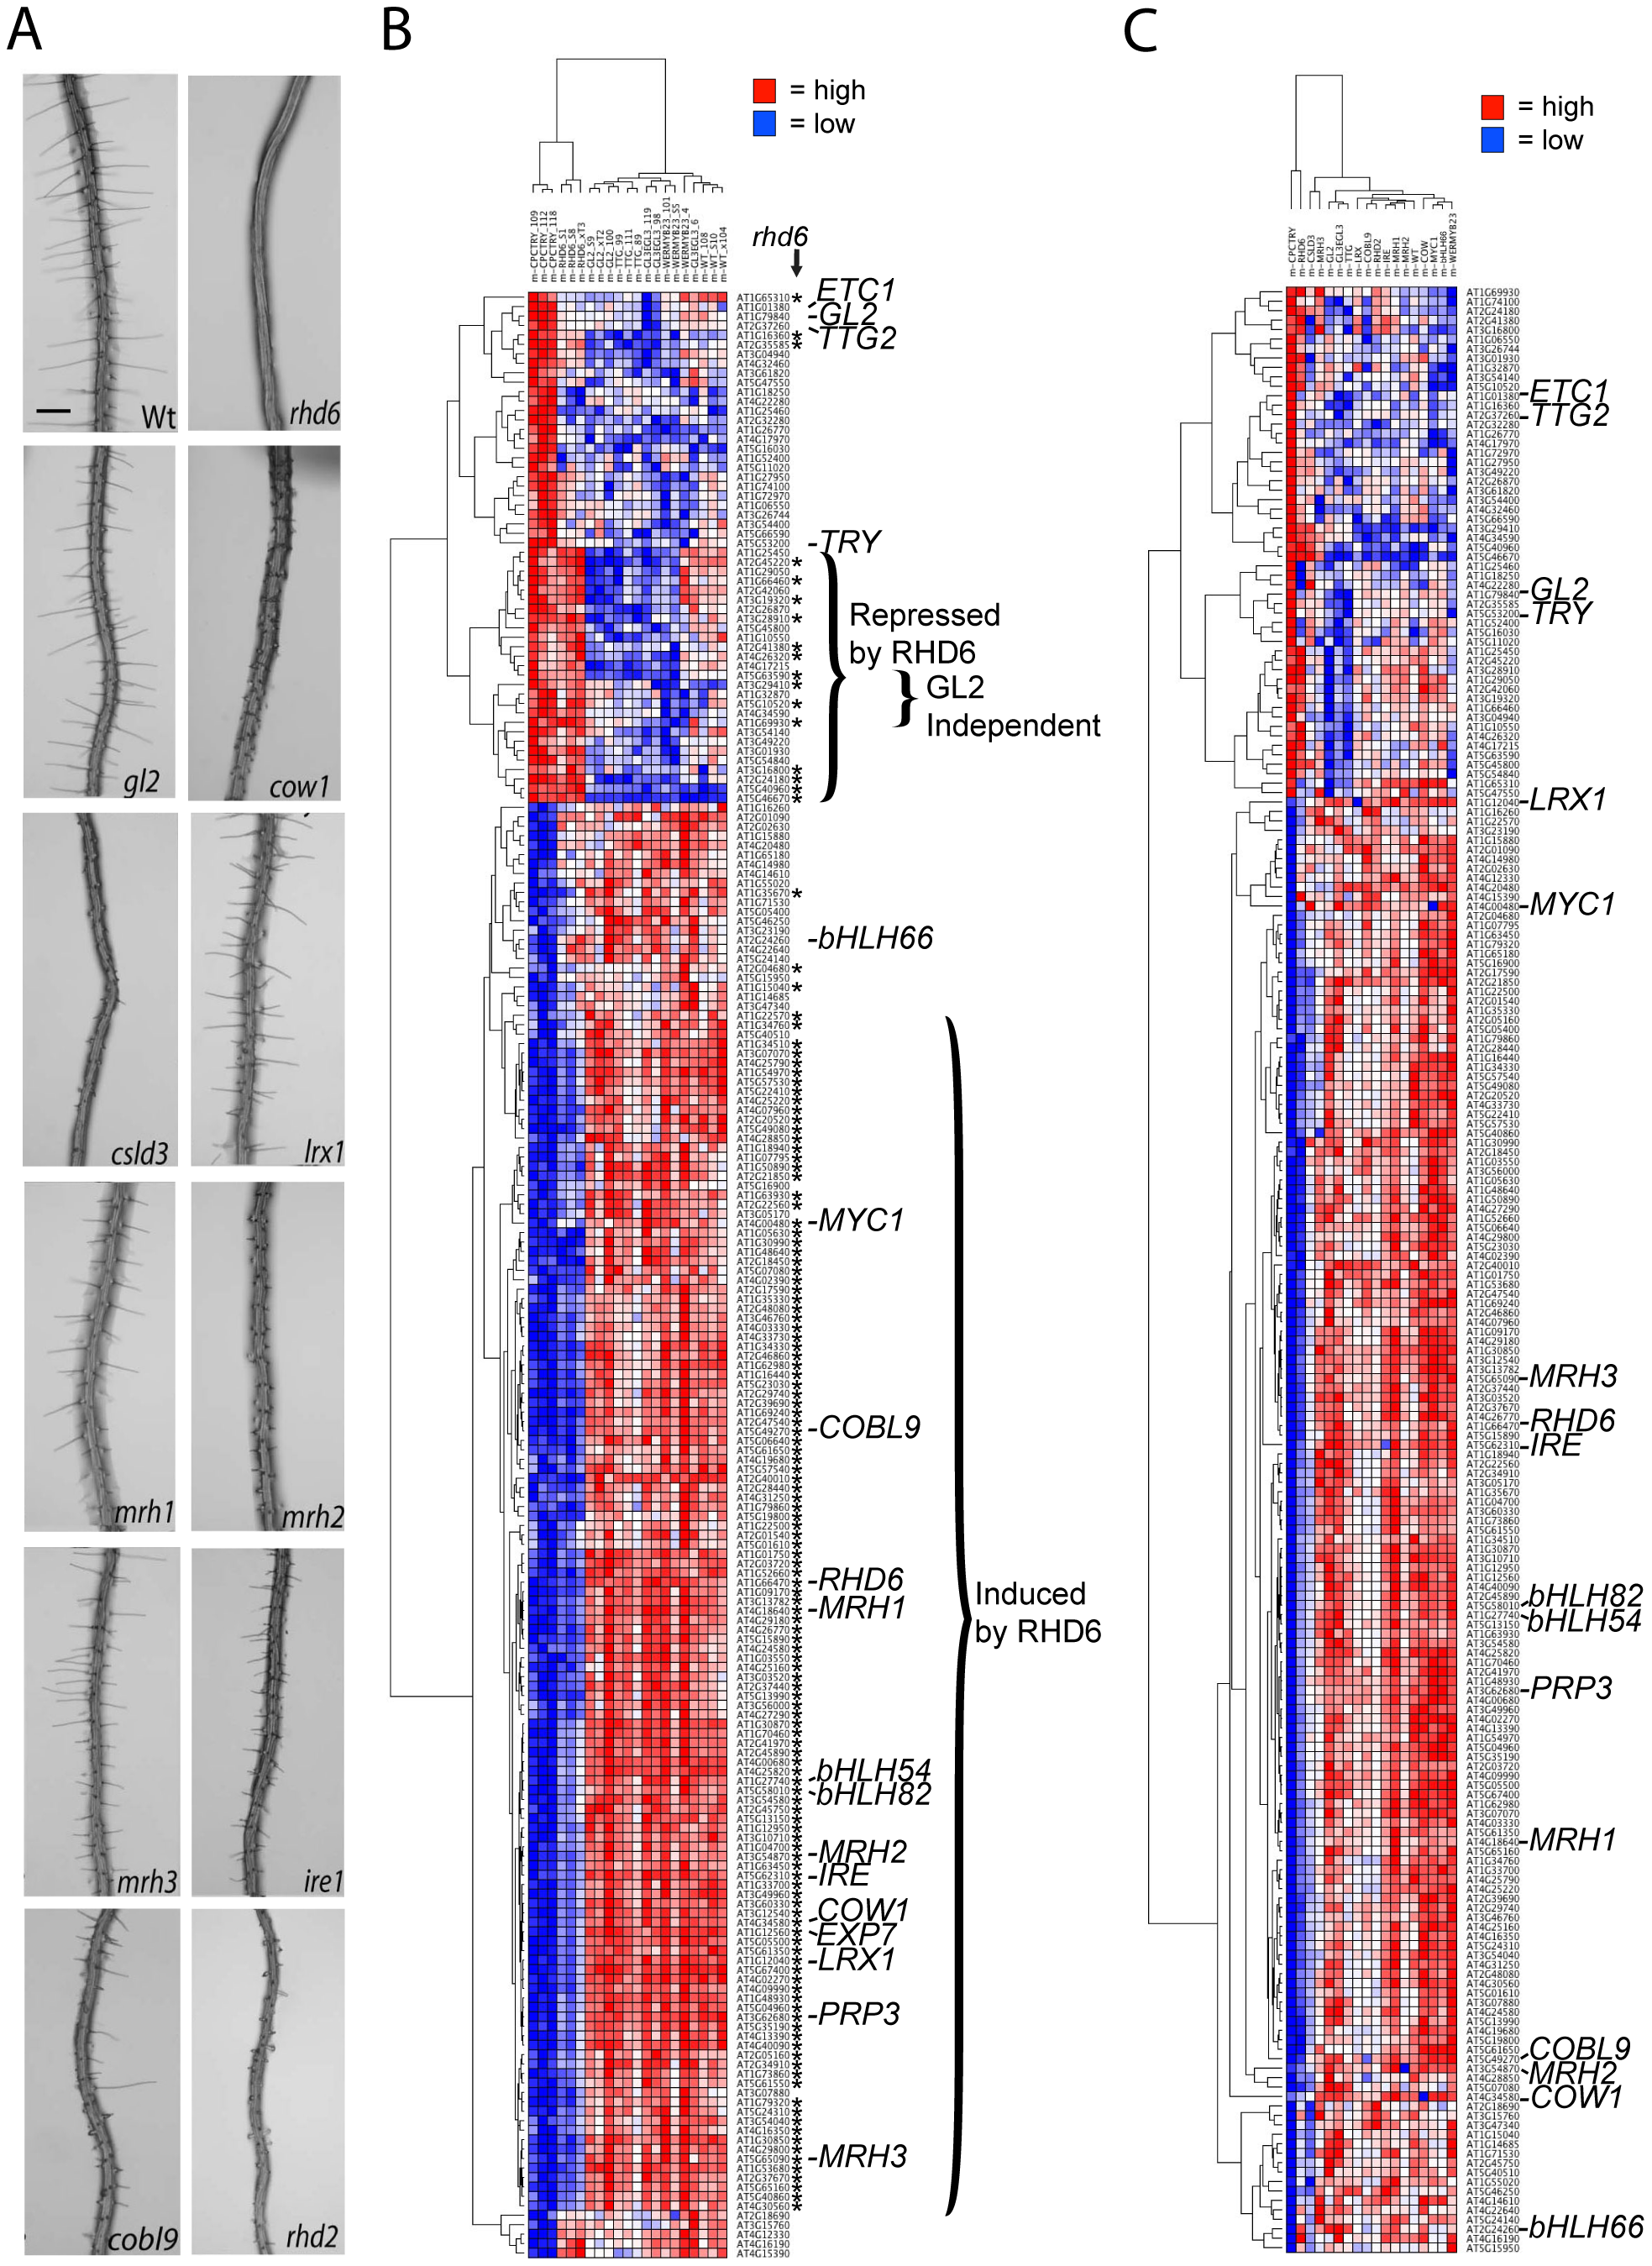 Effect of mutations on expression of the 208 core root epidermal genes.